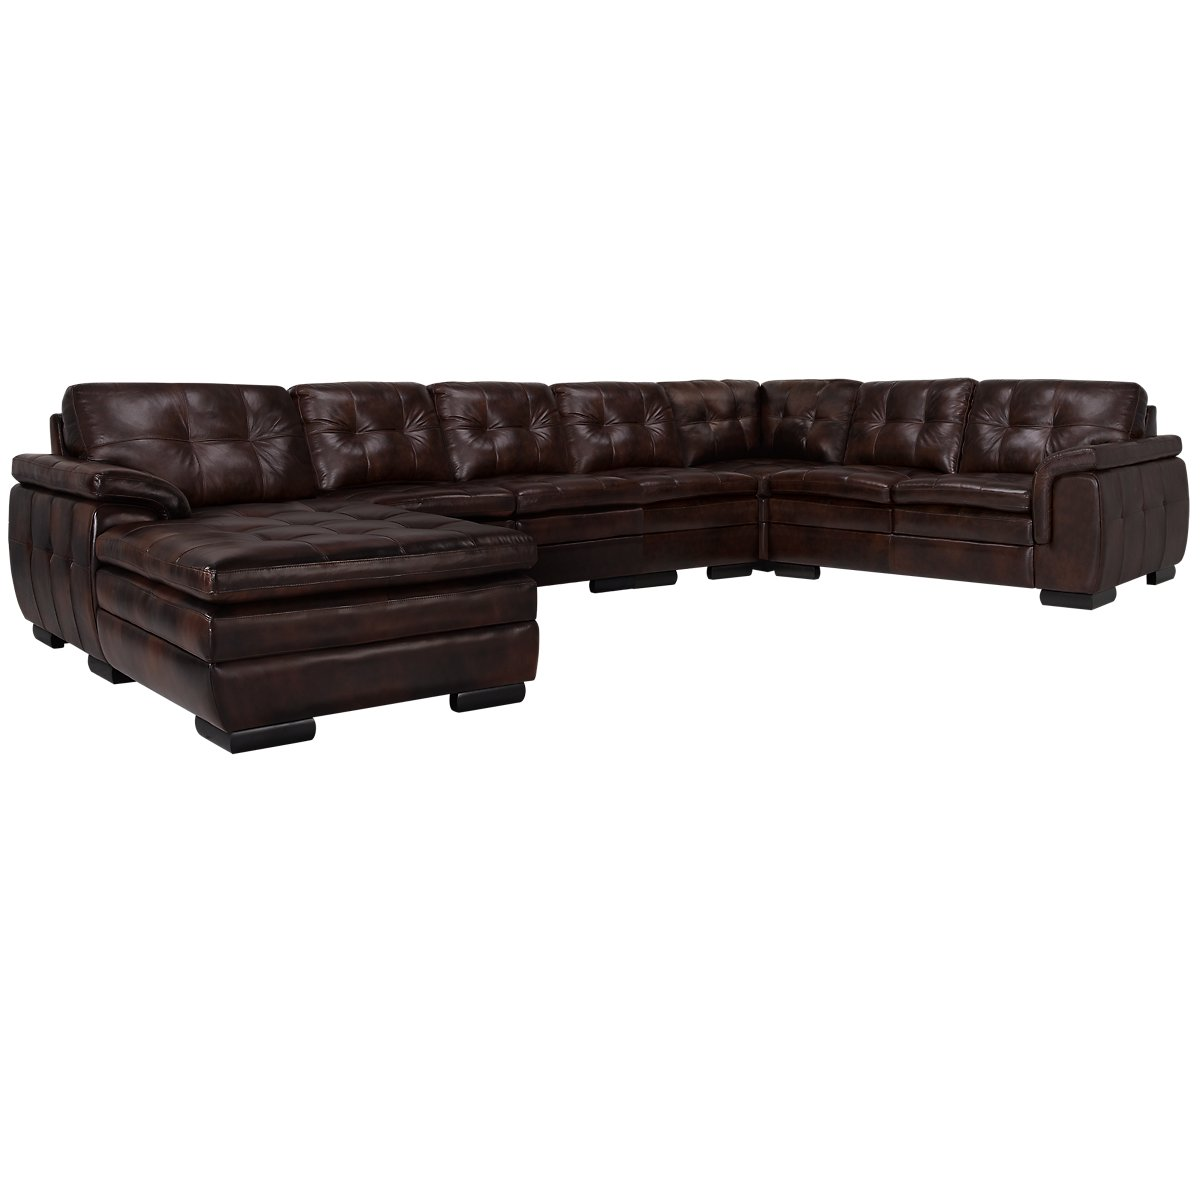 City furniture trevor dark brown leather large left for Brown leather sectional with chaise